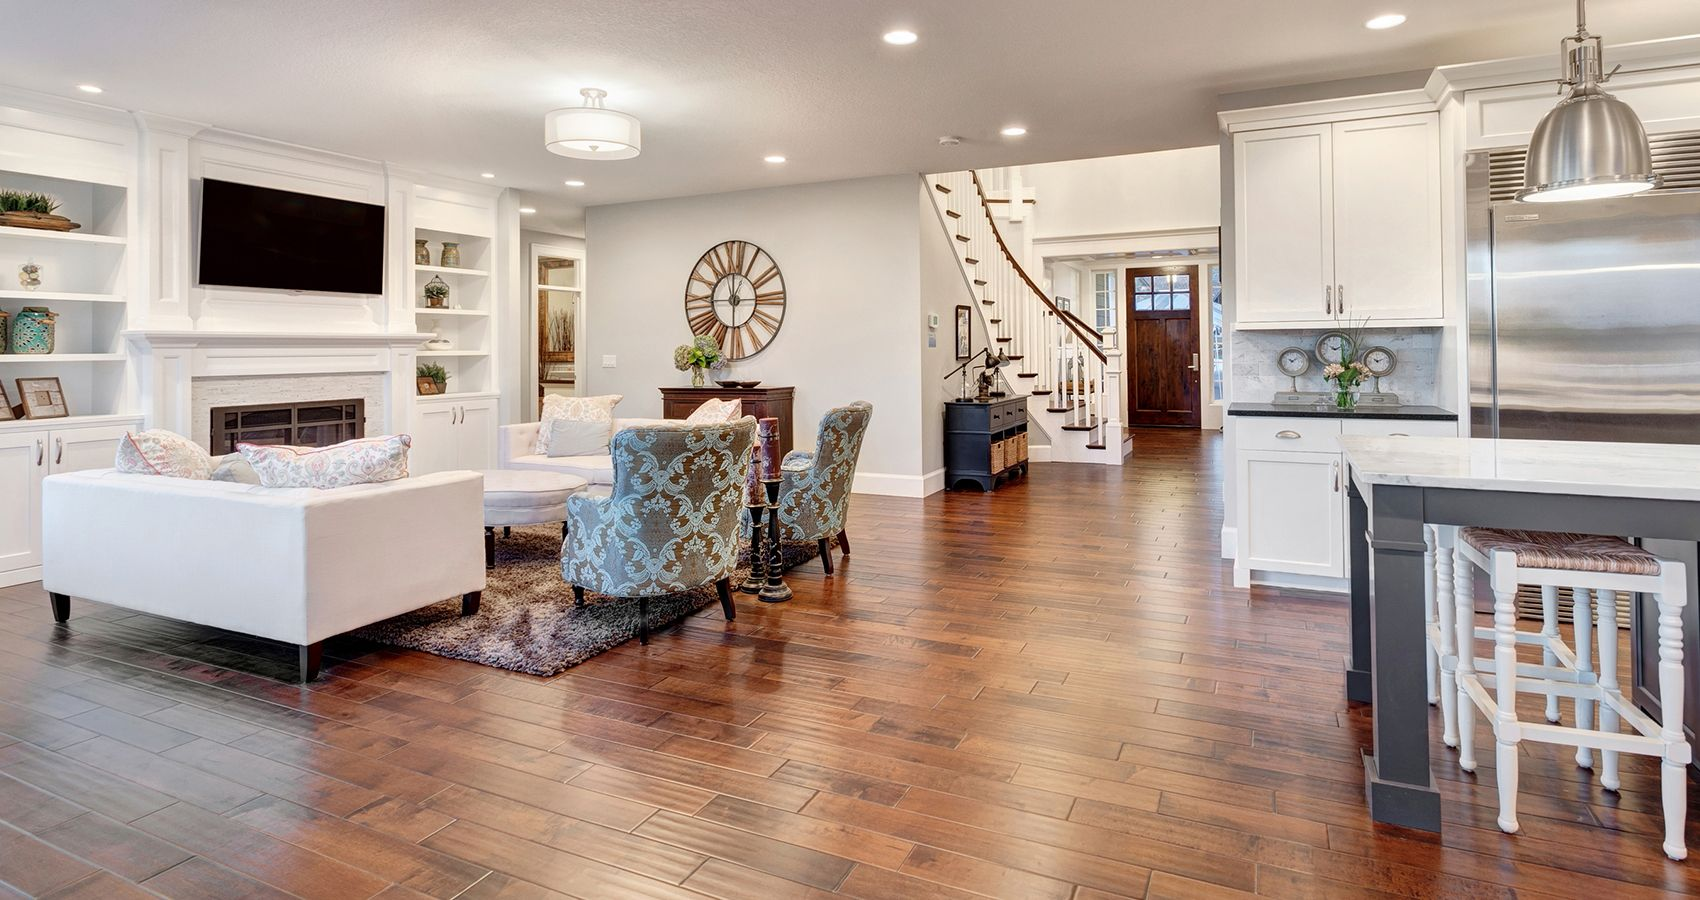 Get Your Hardwood Floor Glowing With The Best Hardwood Floor